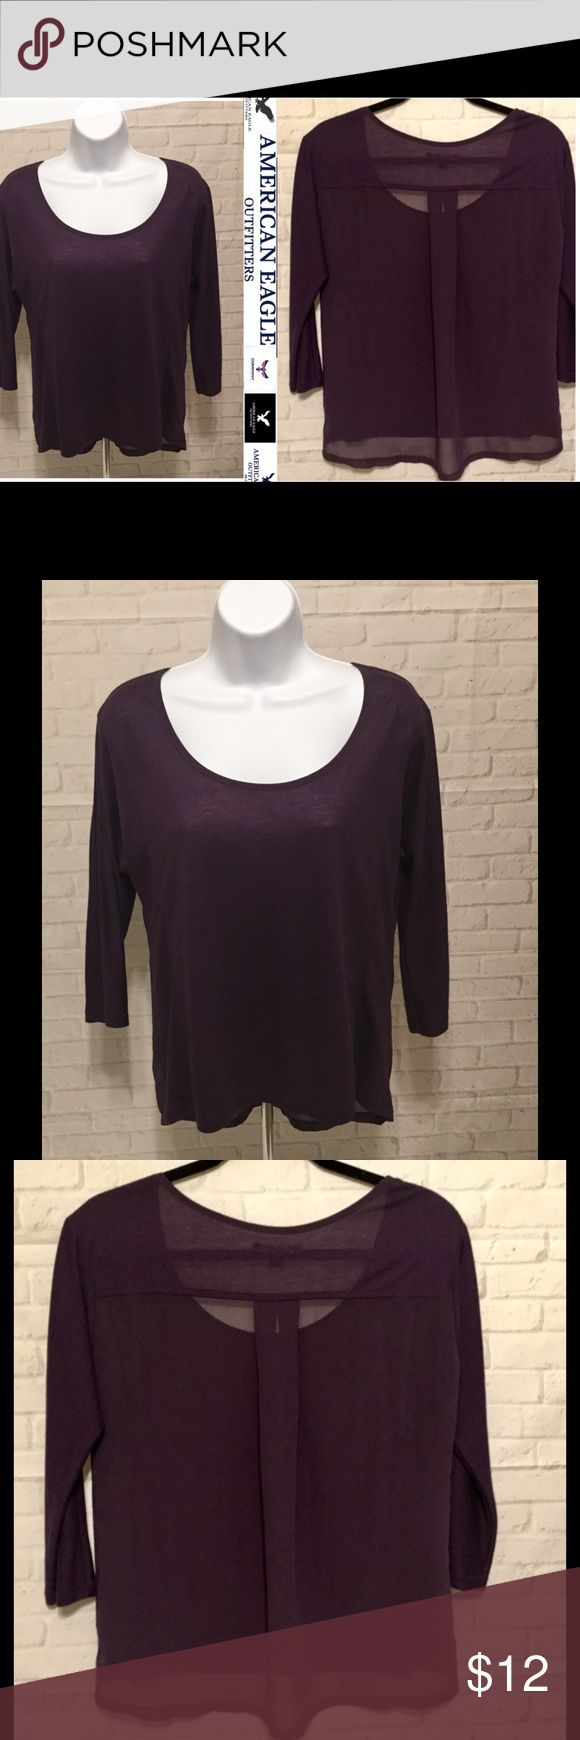 """American Eagle top women's small S/P shear back This is a very stylish high low American Eagle top with an elegant shear back.  This Top is in EXCELLENT CONDITION and comes from a smoke free home.   Sooooo many options wear it casual with leggings,  wear it to work❤❤❤👍👍. The front length measures approx. 22"""" the back length measures approx. 25"""".  Buy with confidence I am a top rated seller and fast shipper.  Don't forget to bundle and save.  Thank you. American Eagle Outfitters Tops…"""